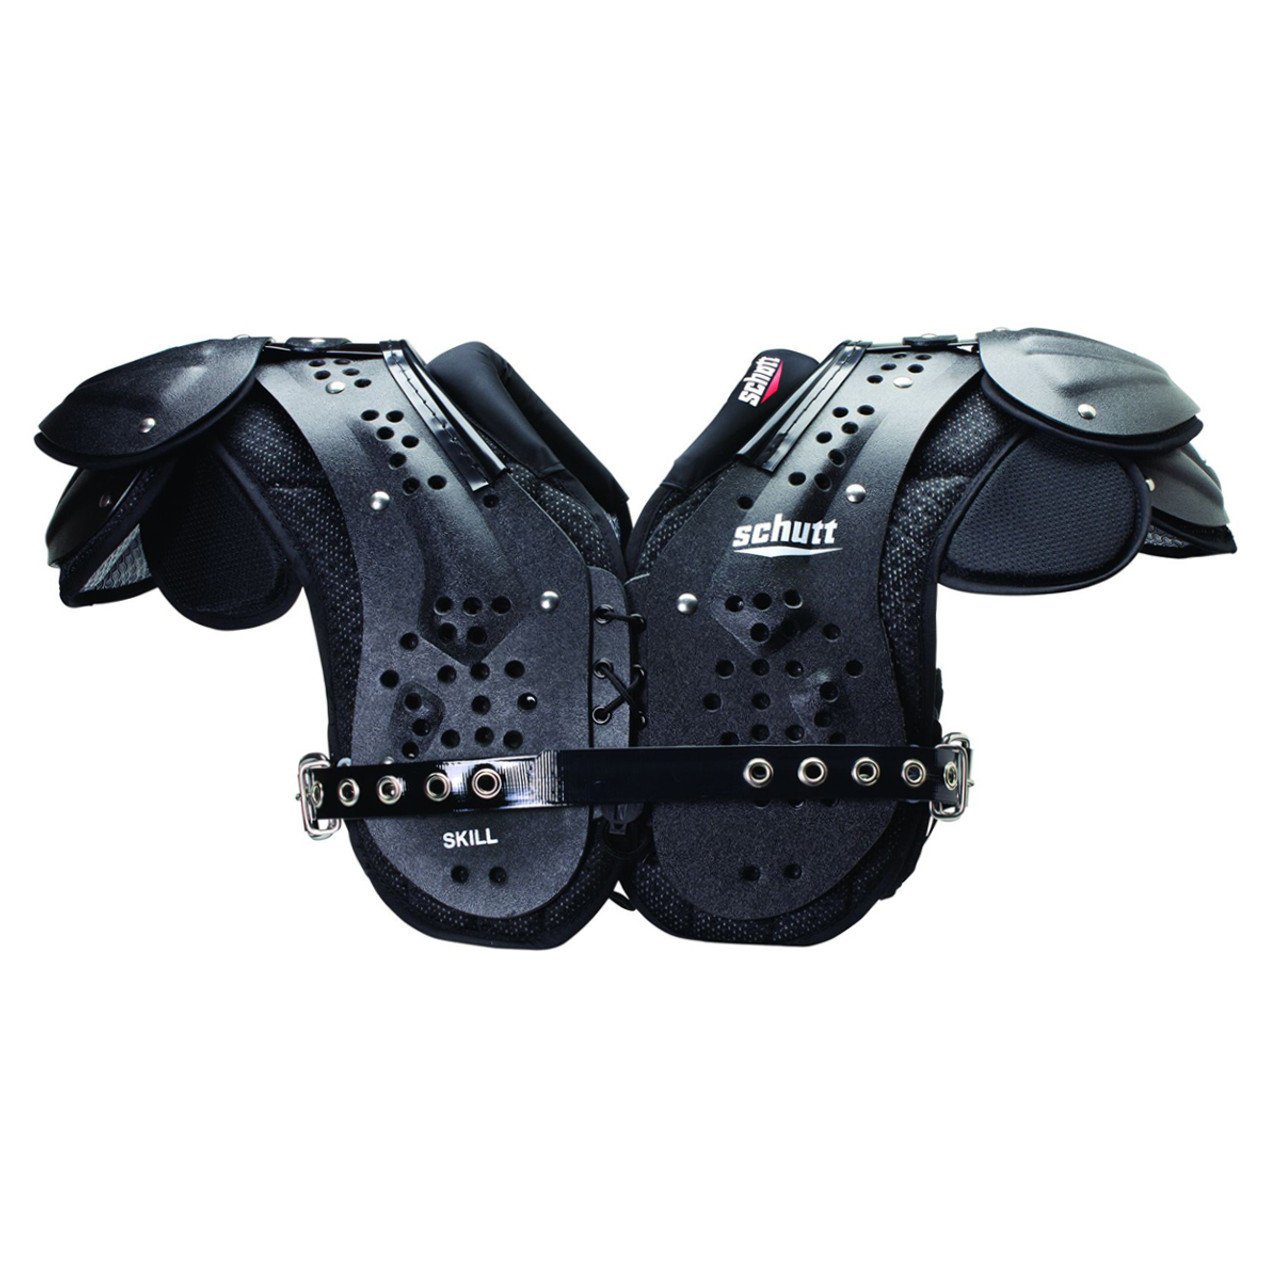 a3351f84a8b Schutt Varsity Flex 4.0 Skills Football Shoulder Pads - Black ...